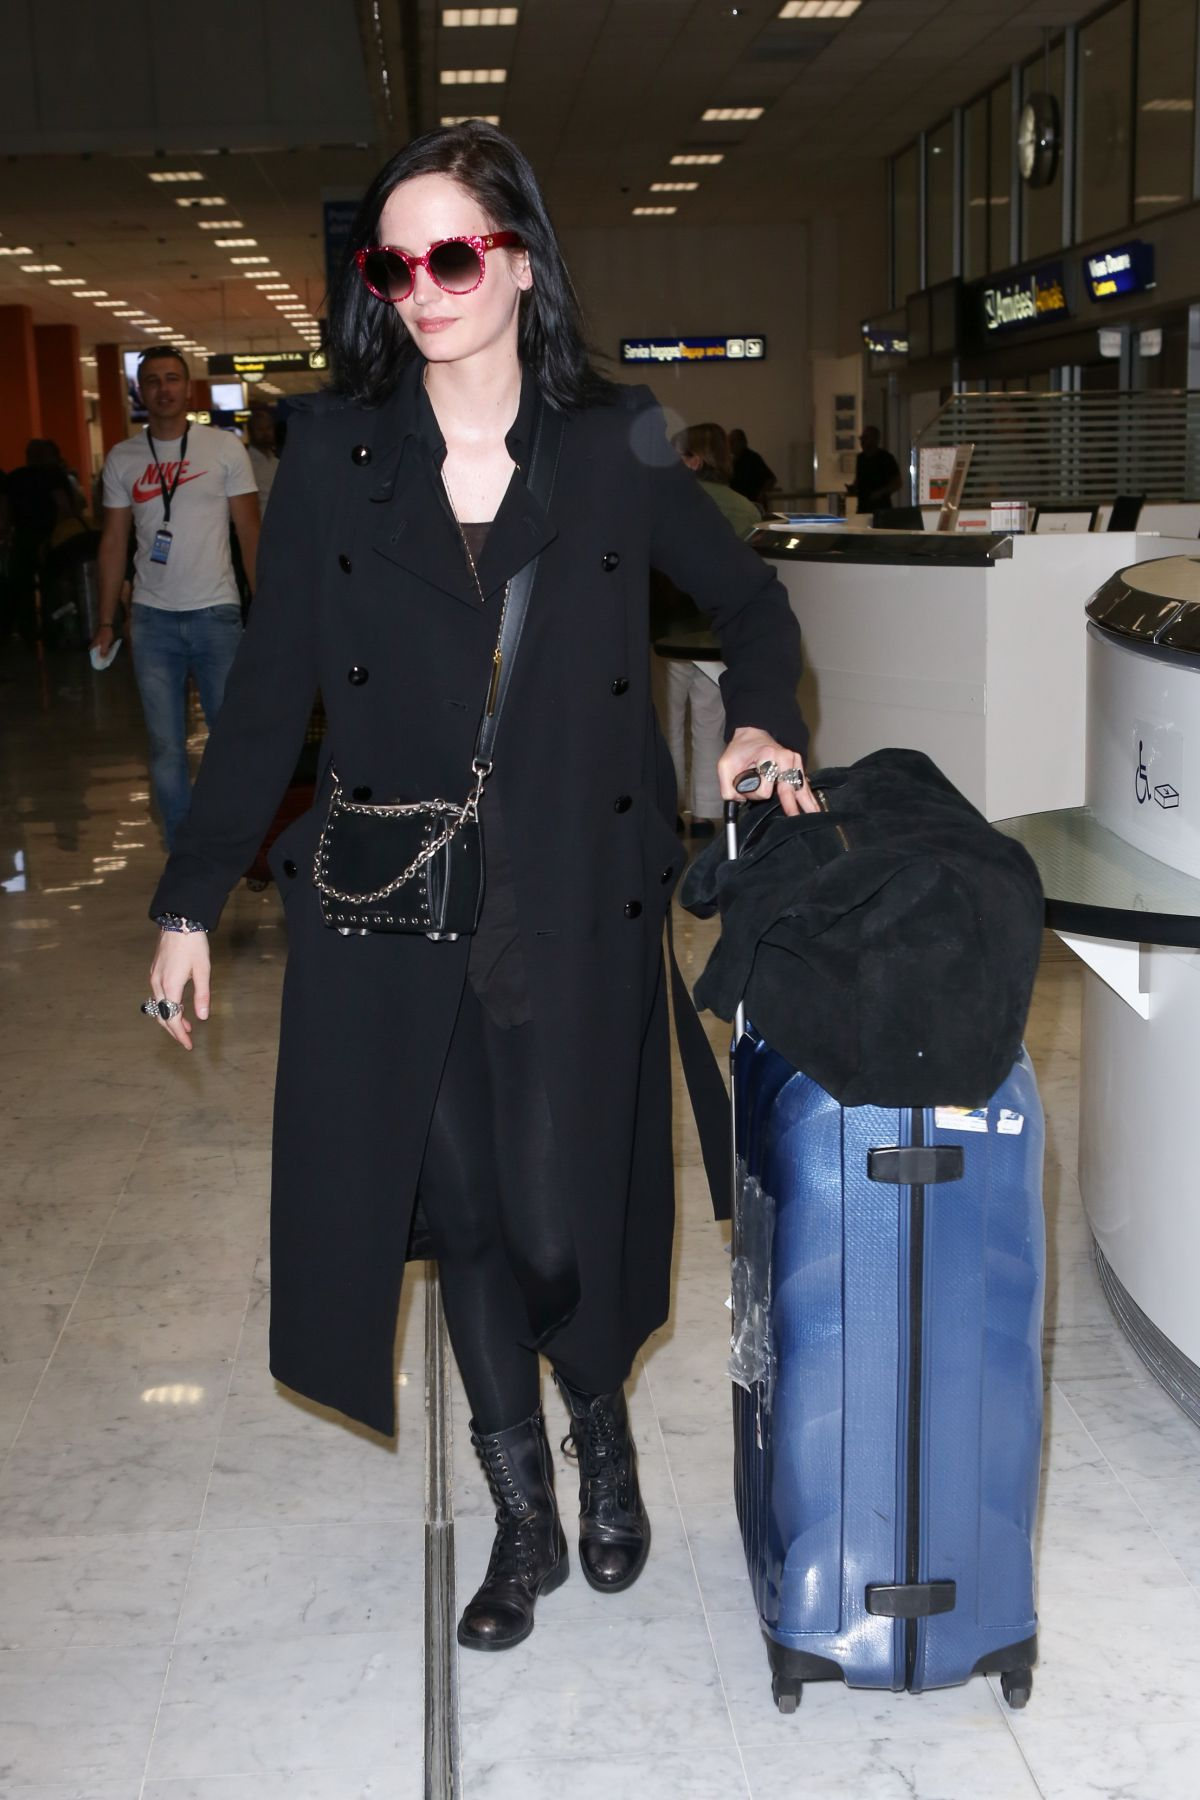 EVA GREEN at Nice Airport 05/25/2017 - HawtCelebs - HawtCelebs